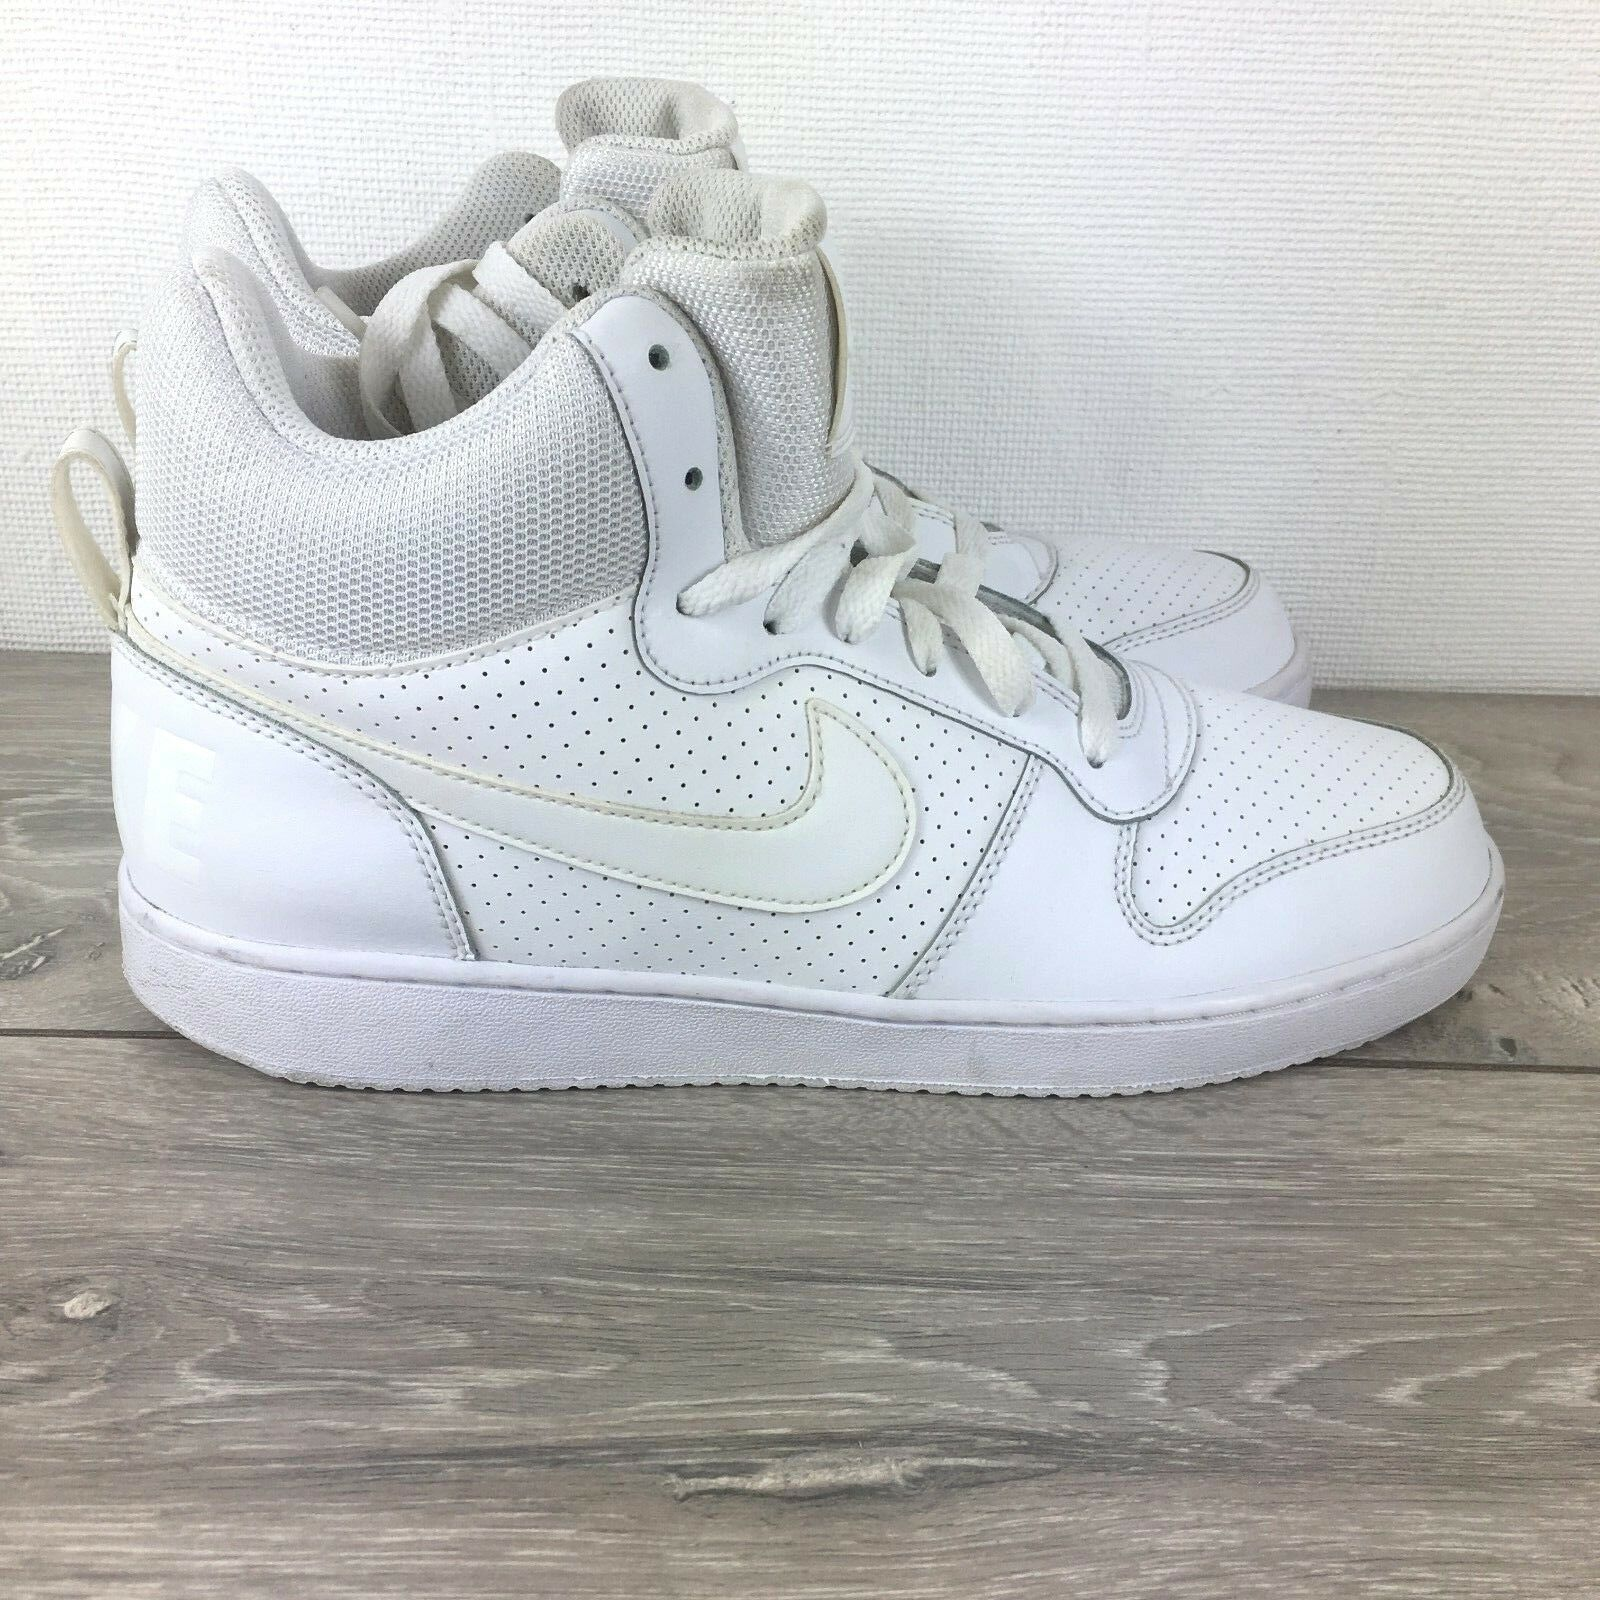 Nike Leather Sneakers High Tops Chaussures Trainers8 EU 42.5 blanc RRP£80 R262-6